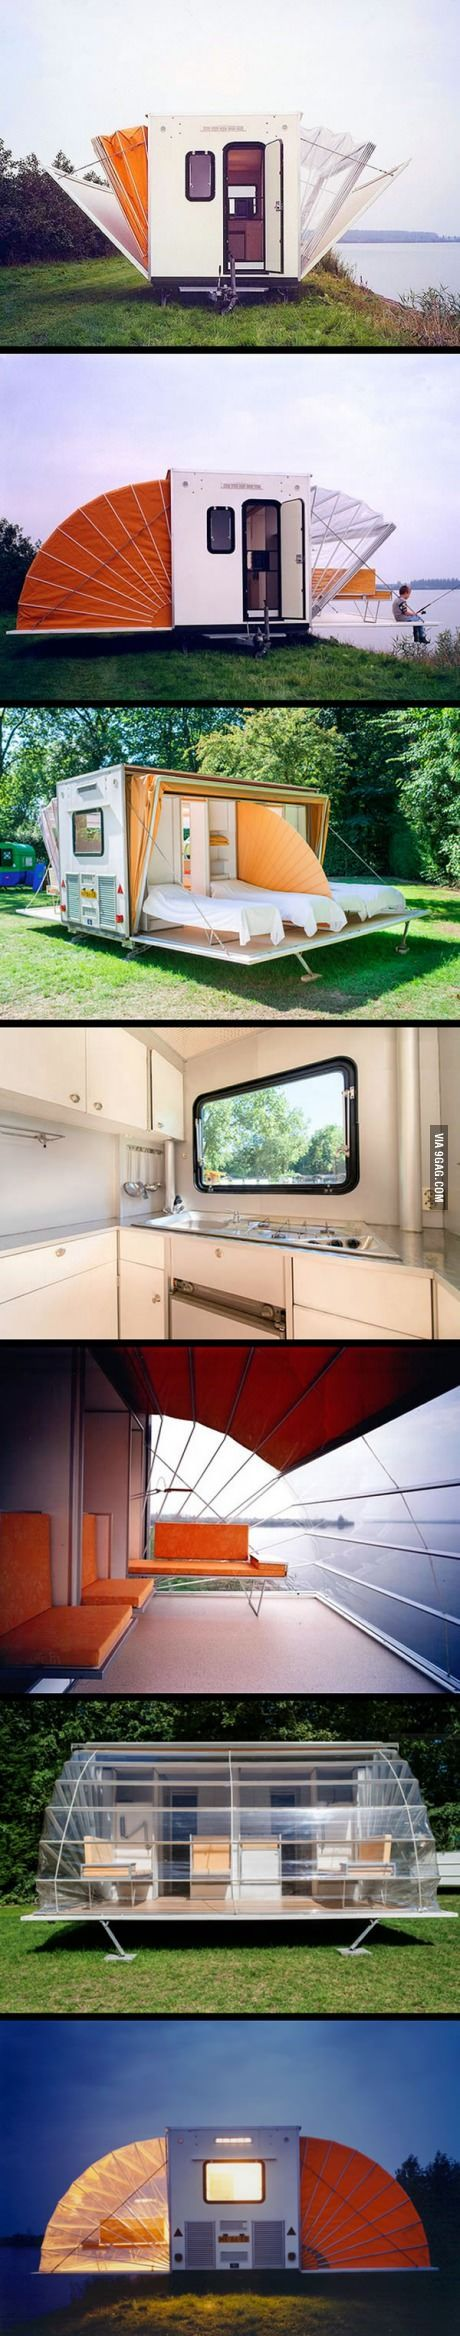 Never know camping can be this cool